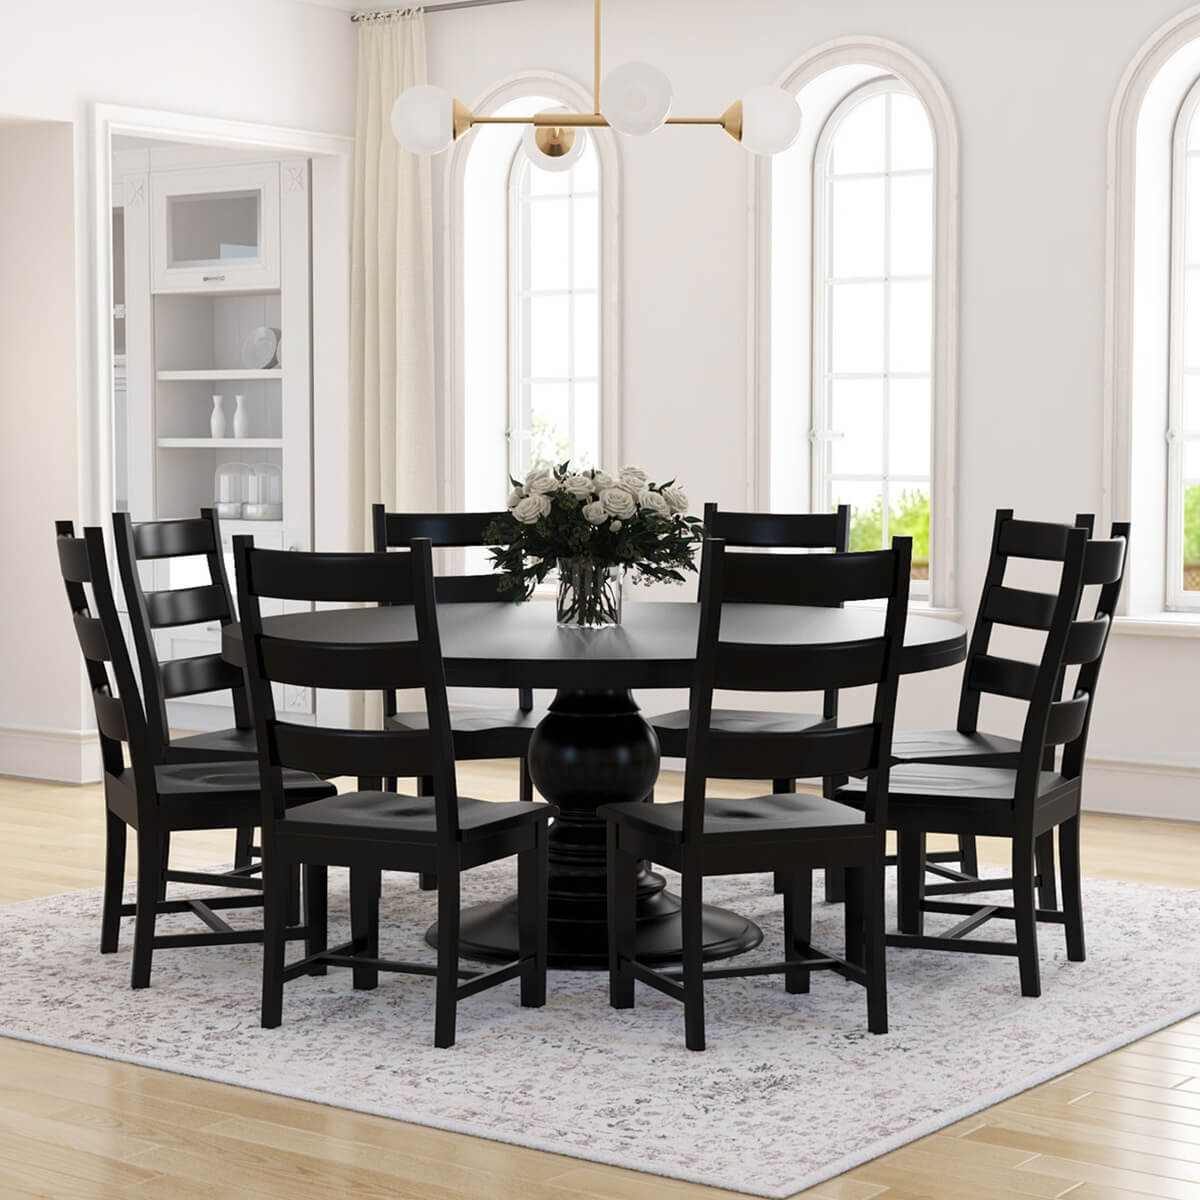 Wooden Dining Table Set ~ Nottingham rustic solid wood black round dining room table set